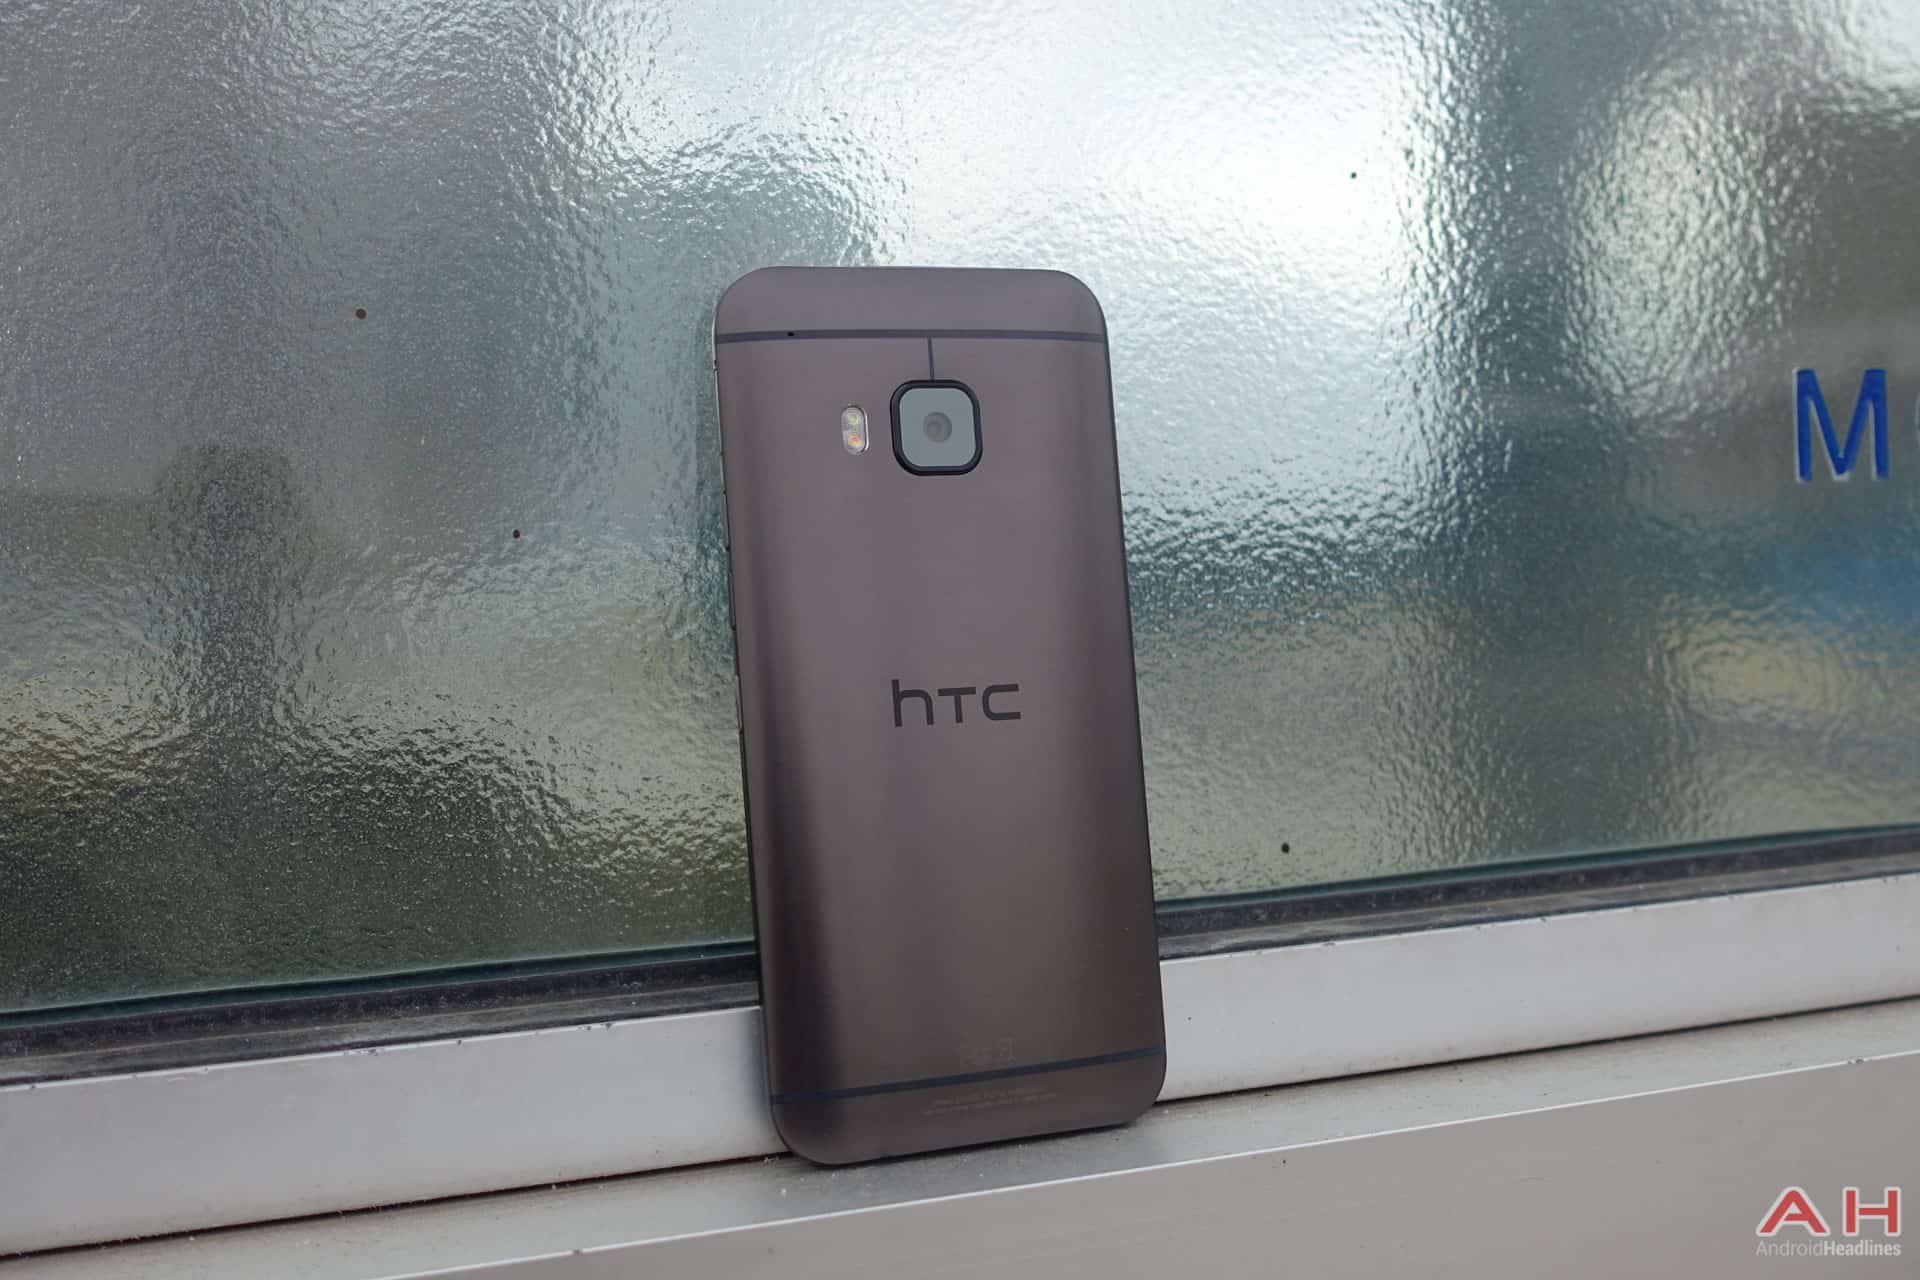 HTC-One-M9-Review-AH-55